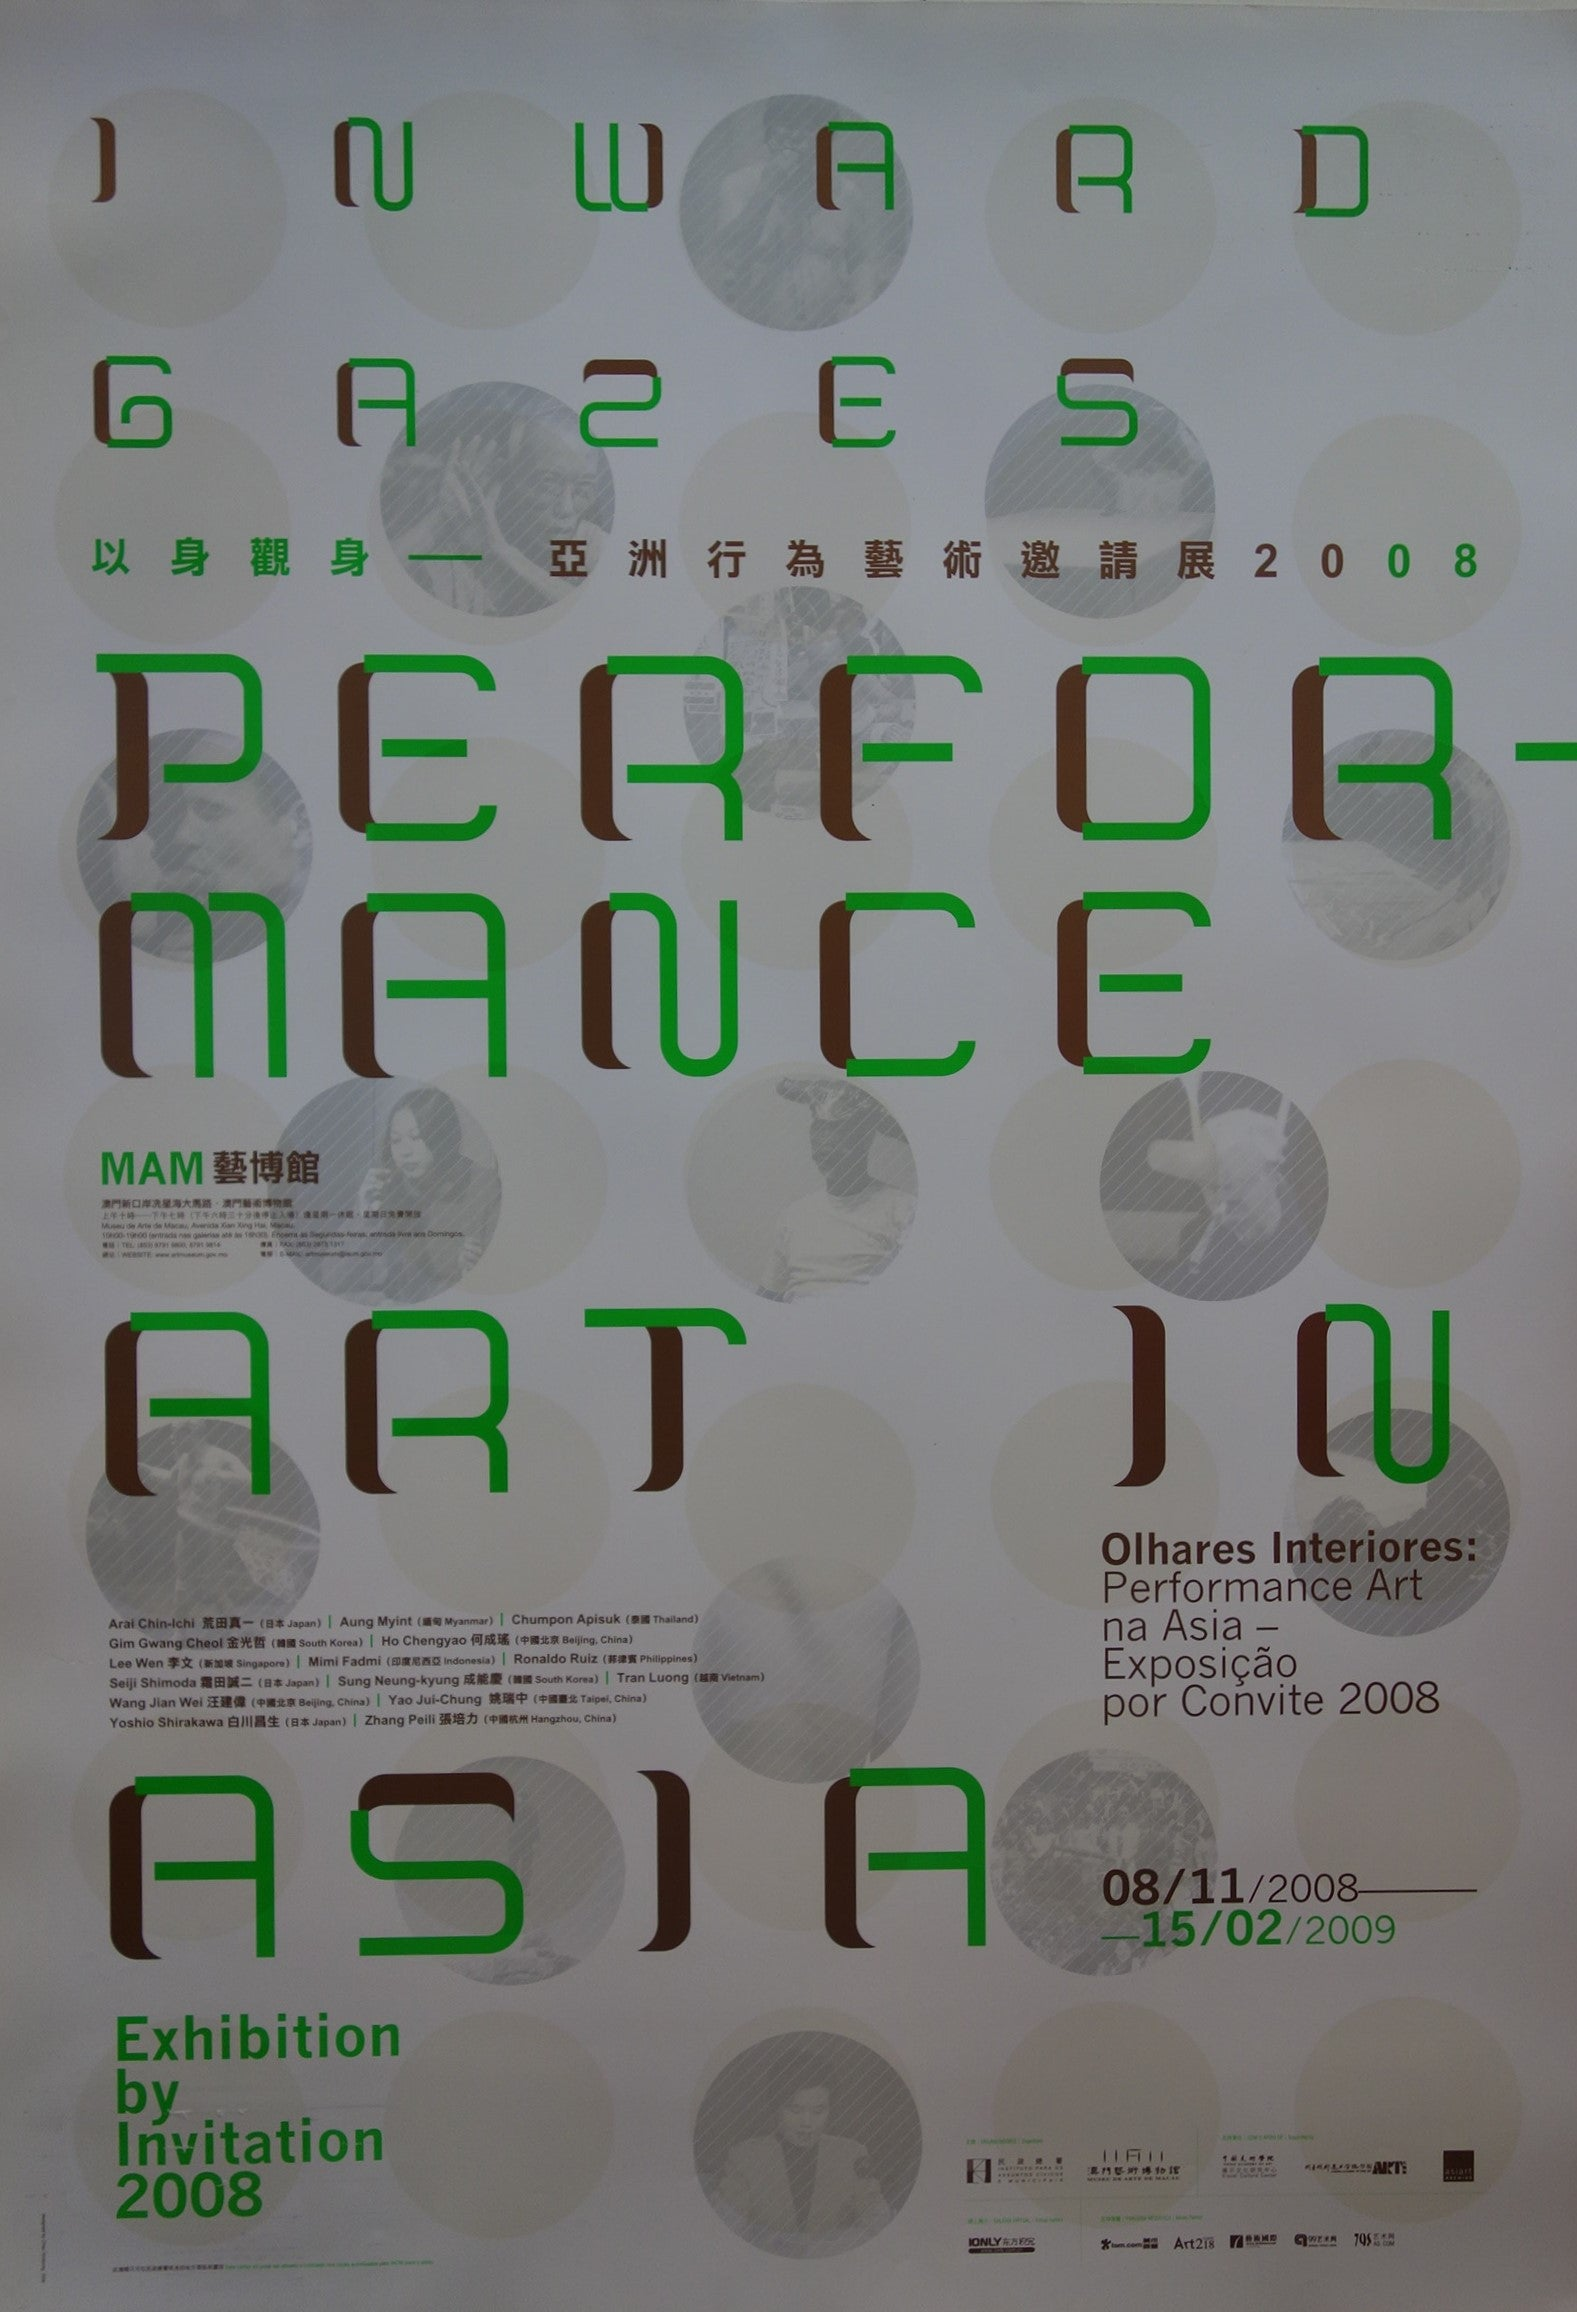 Performance Art in Asia Poster